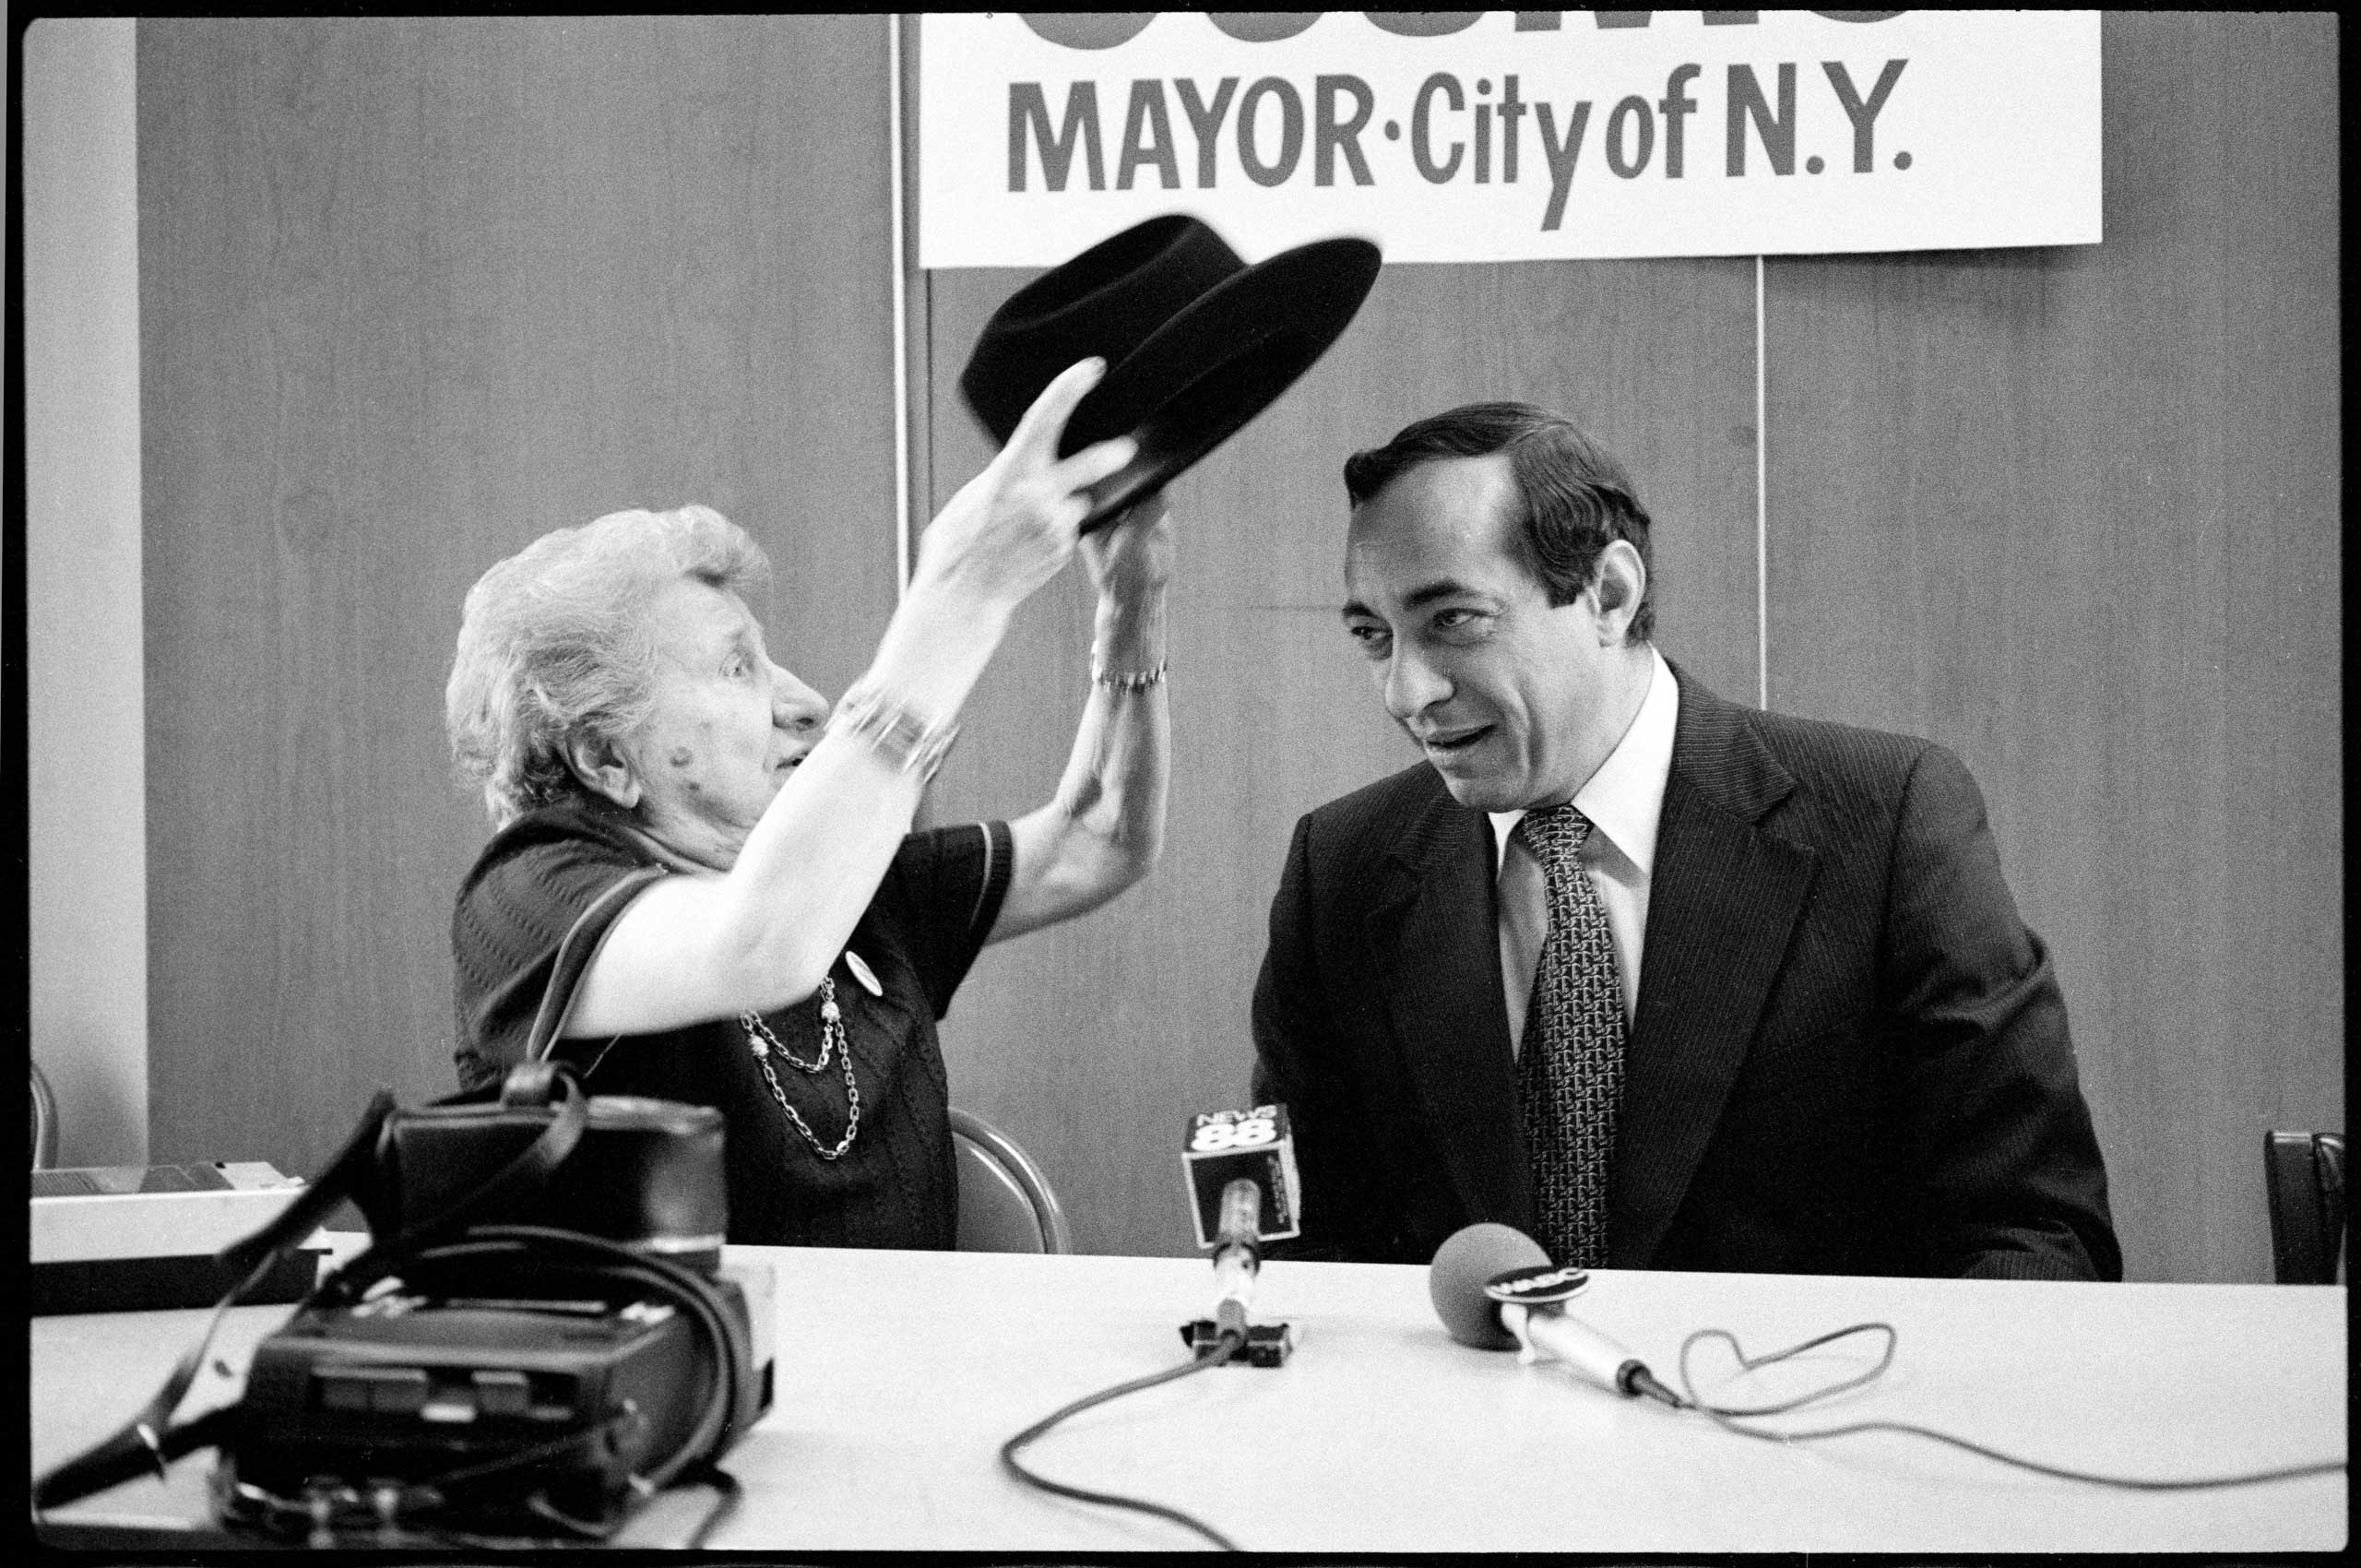 Mrs. Marie LaGuardia endorsed Mario Cuomo's candidacy for Mayor, presenting him with one of Mayor Fiorello LaGuardia's famous hats for good luck, at Cuomo's Times Square headquarters in New York City on Oct. 25, 1977.